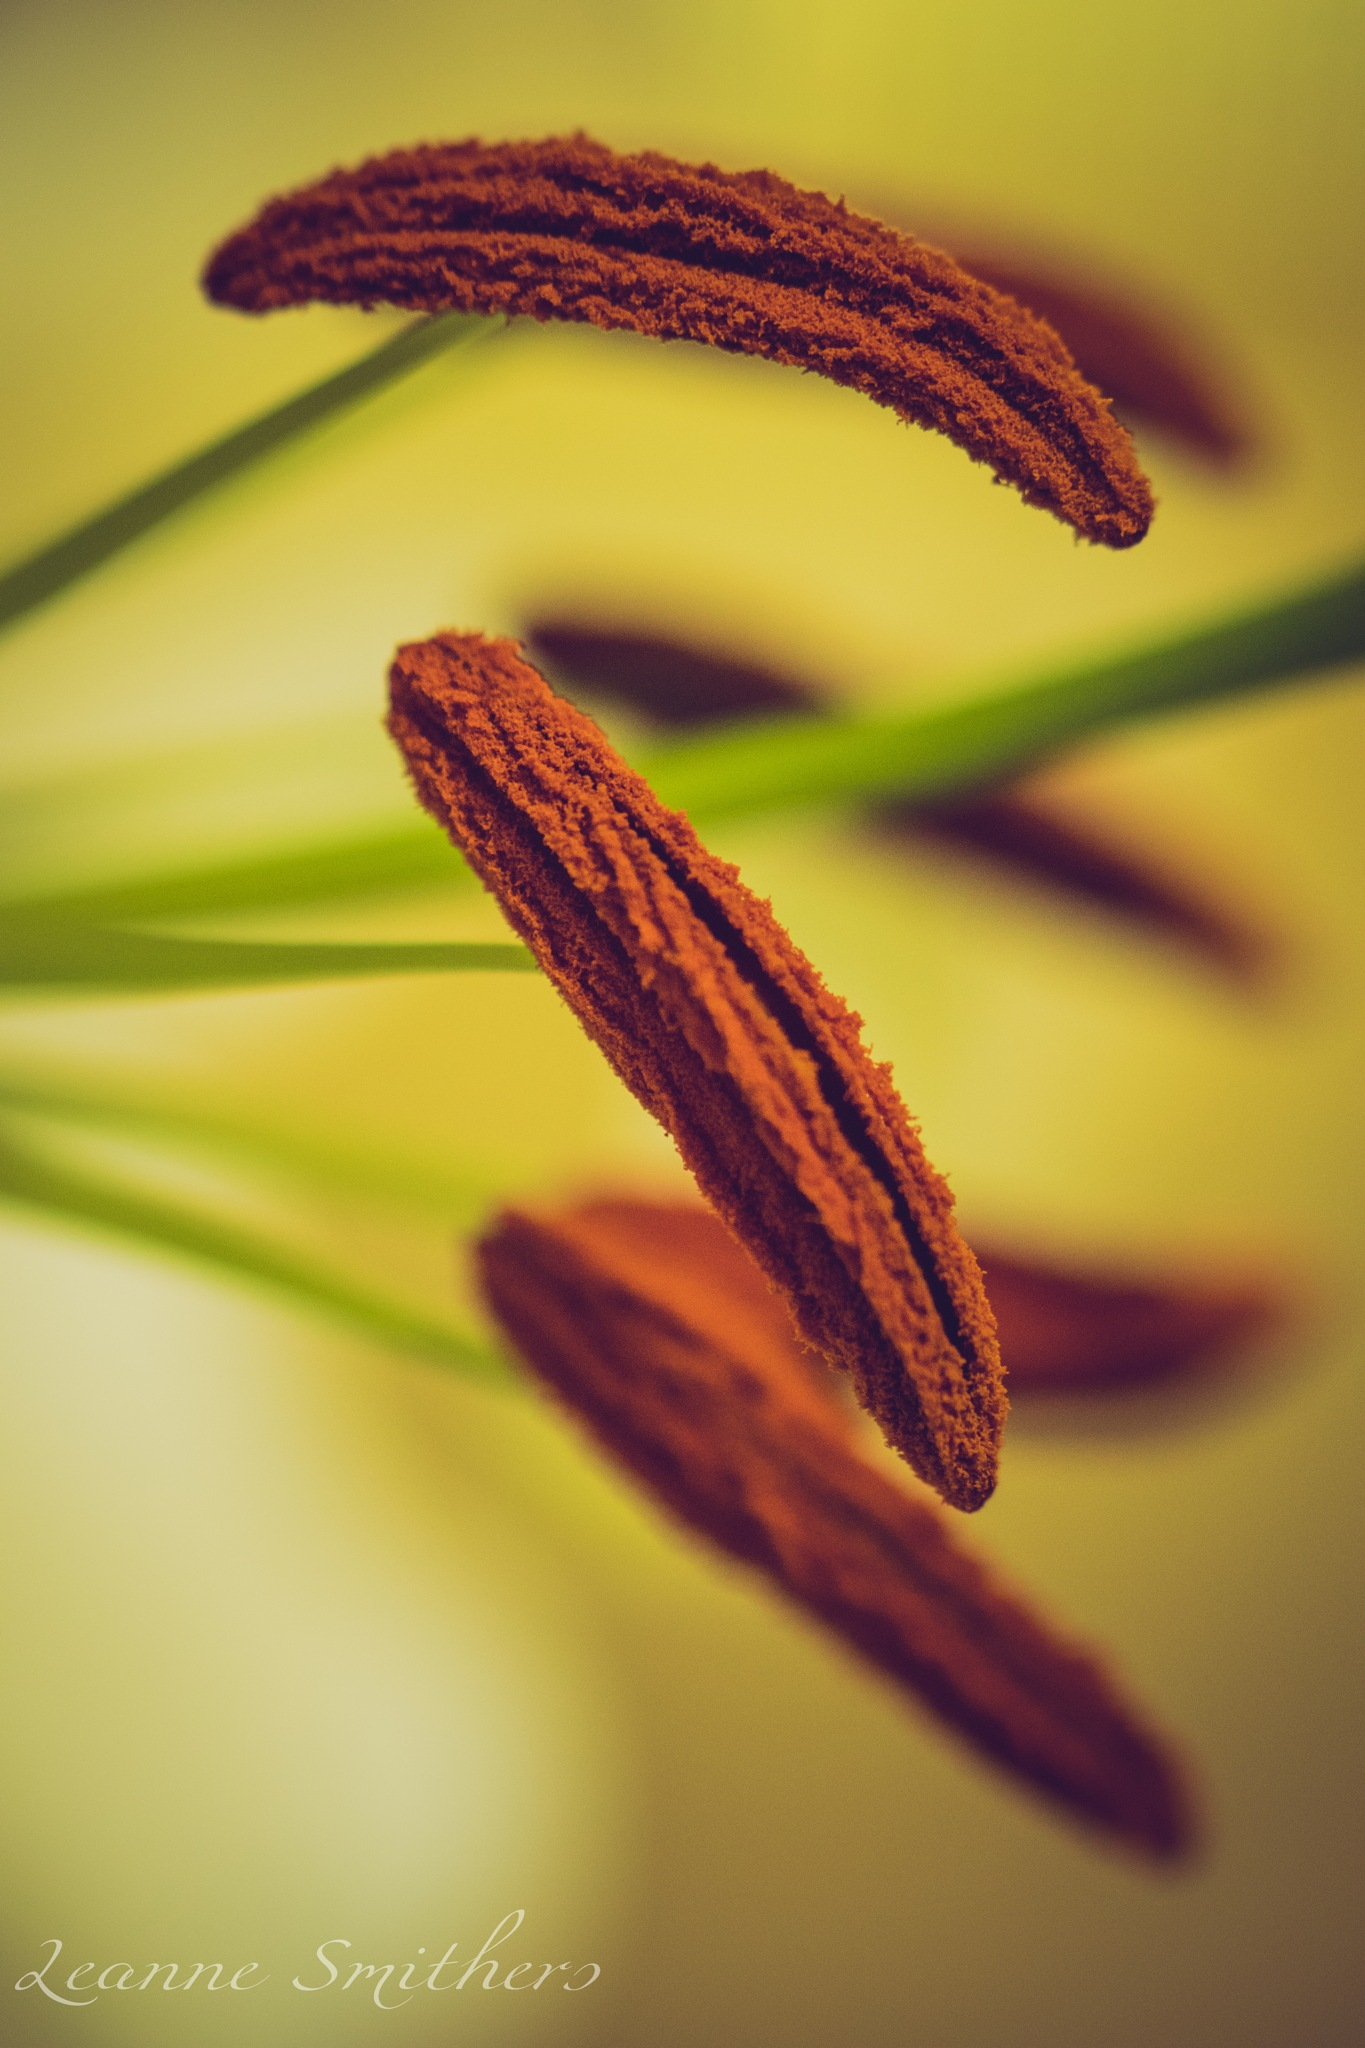 Lily stamens by Leanne Smithers